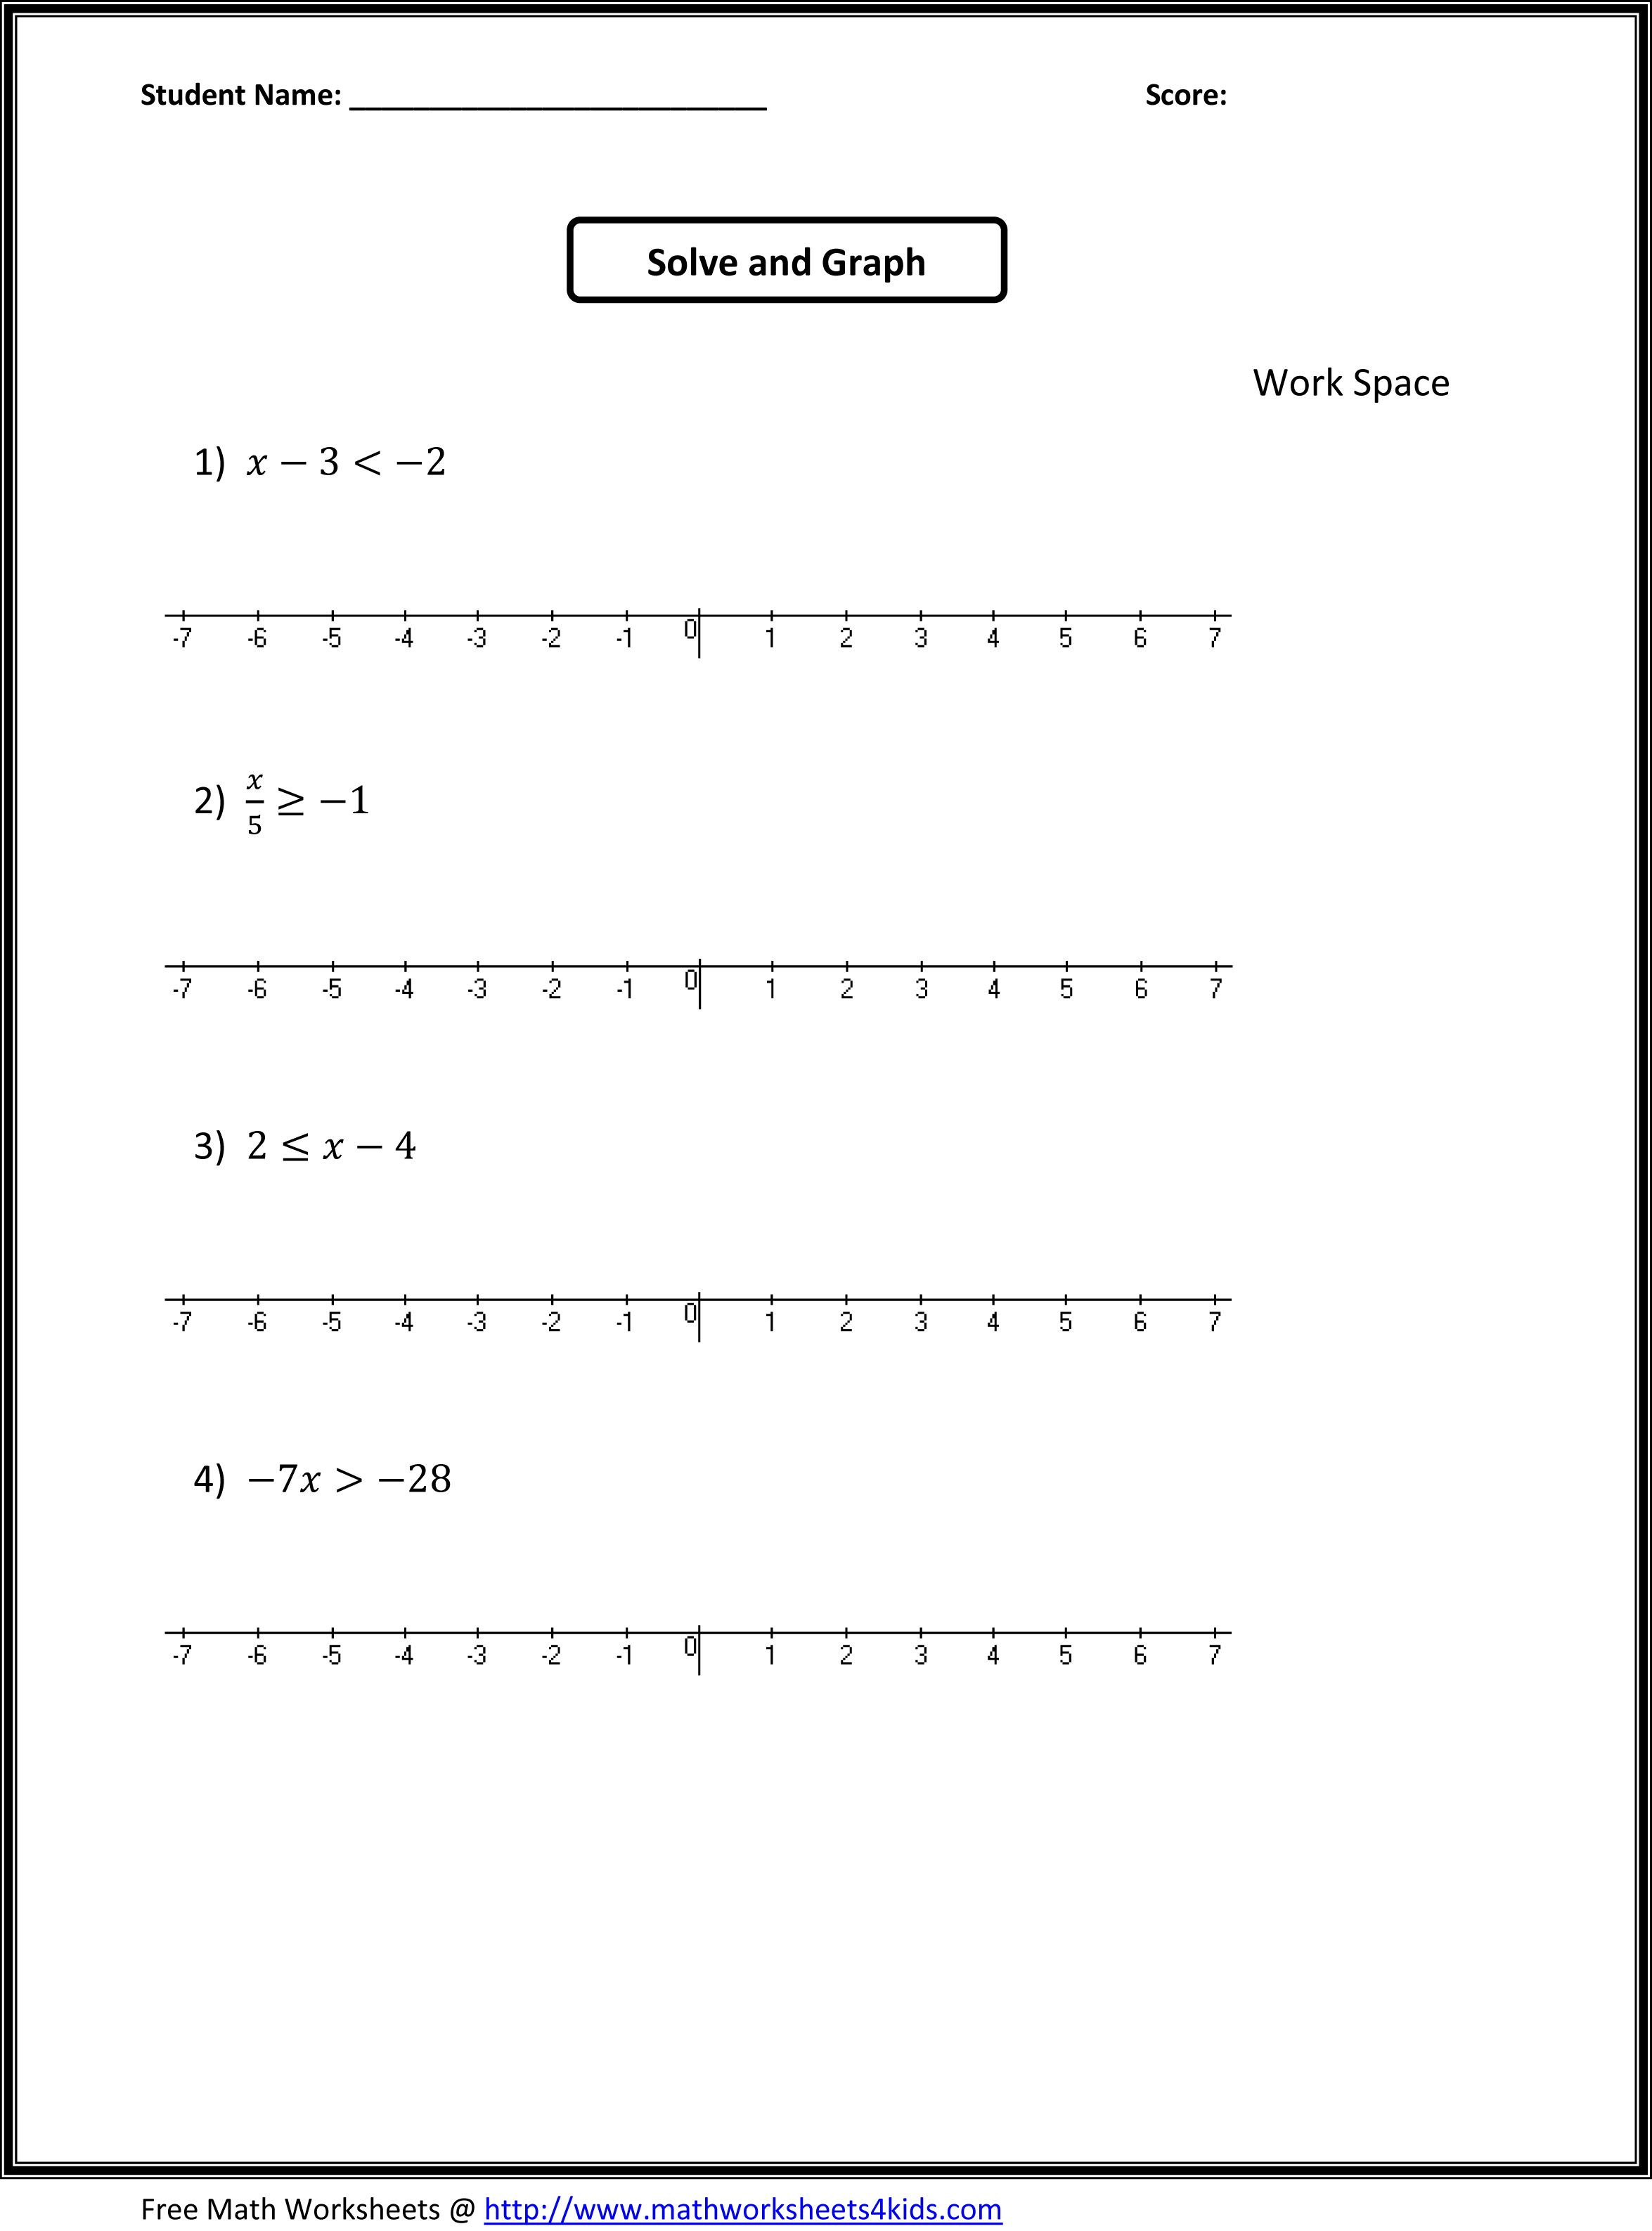 10th Grade Math Worksheet Averages